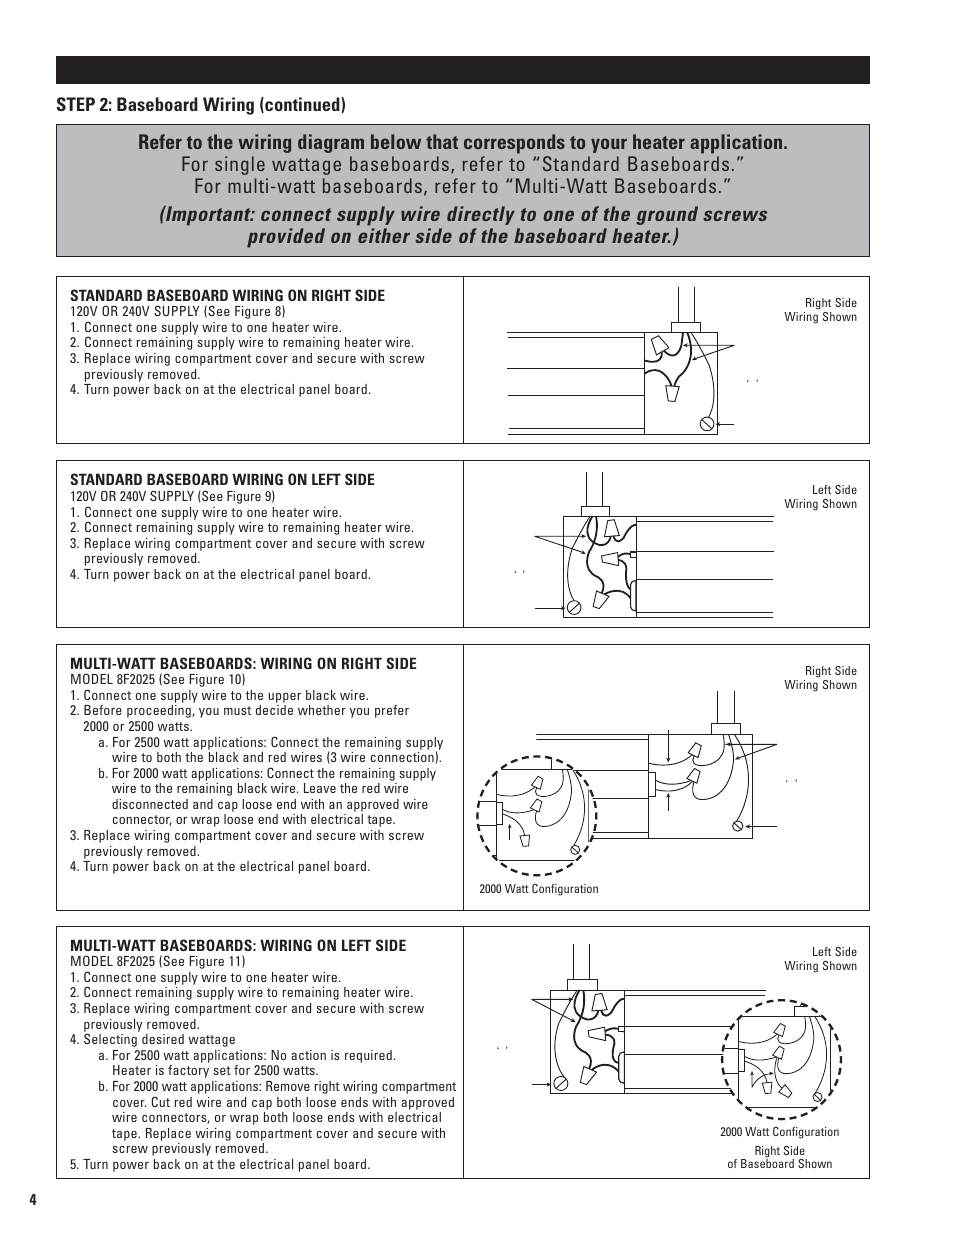 cadet 5f1250 8 page4?resize=665%2C861 w430 cadet heater wiring diagram conventional fire alarm wiring 220 3 Wire Wiring Diagram at virtualis.co